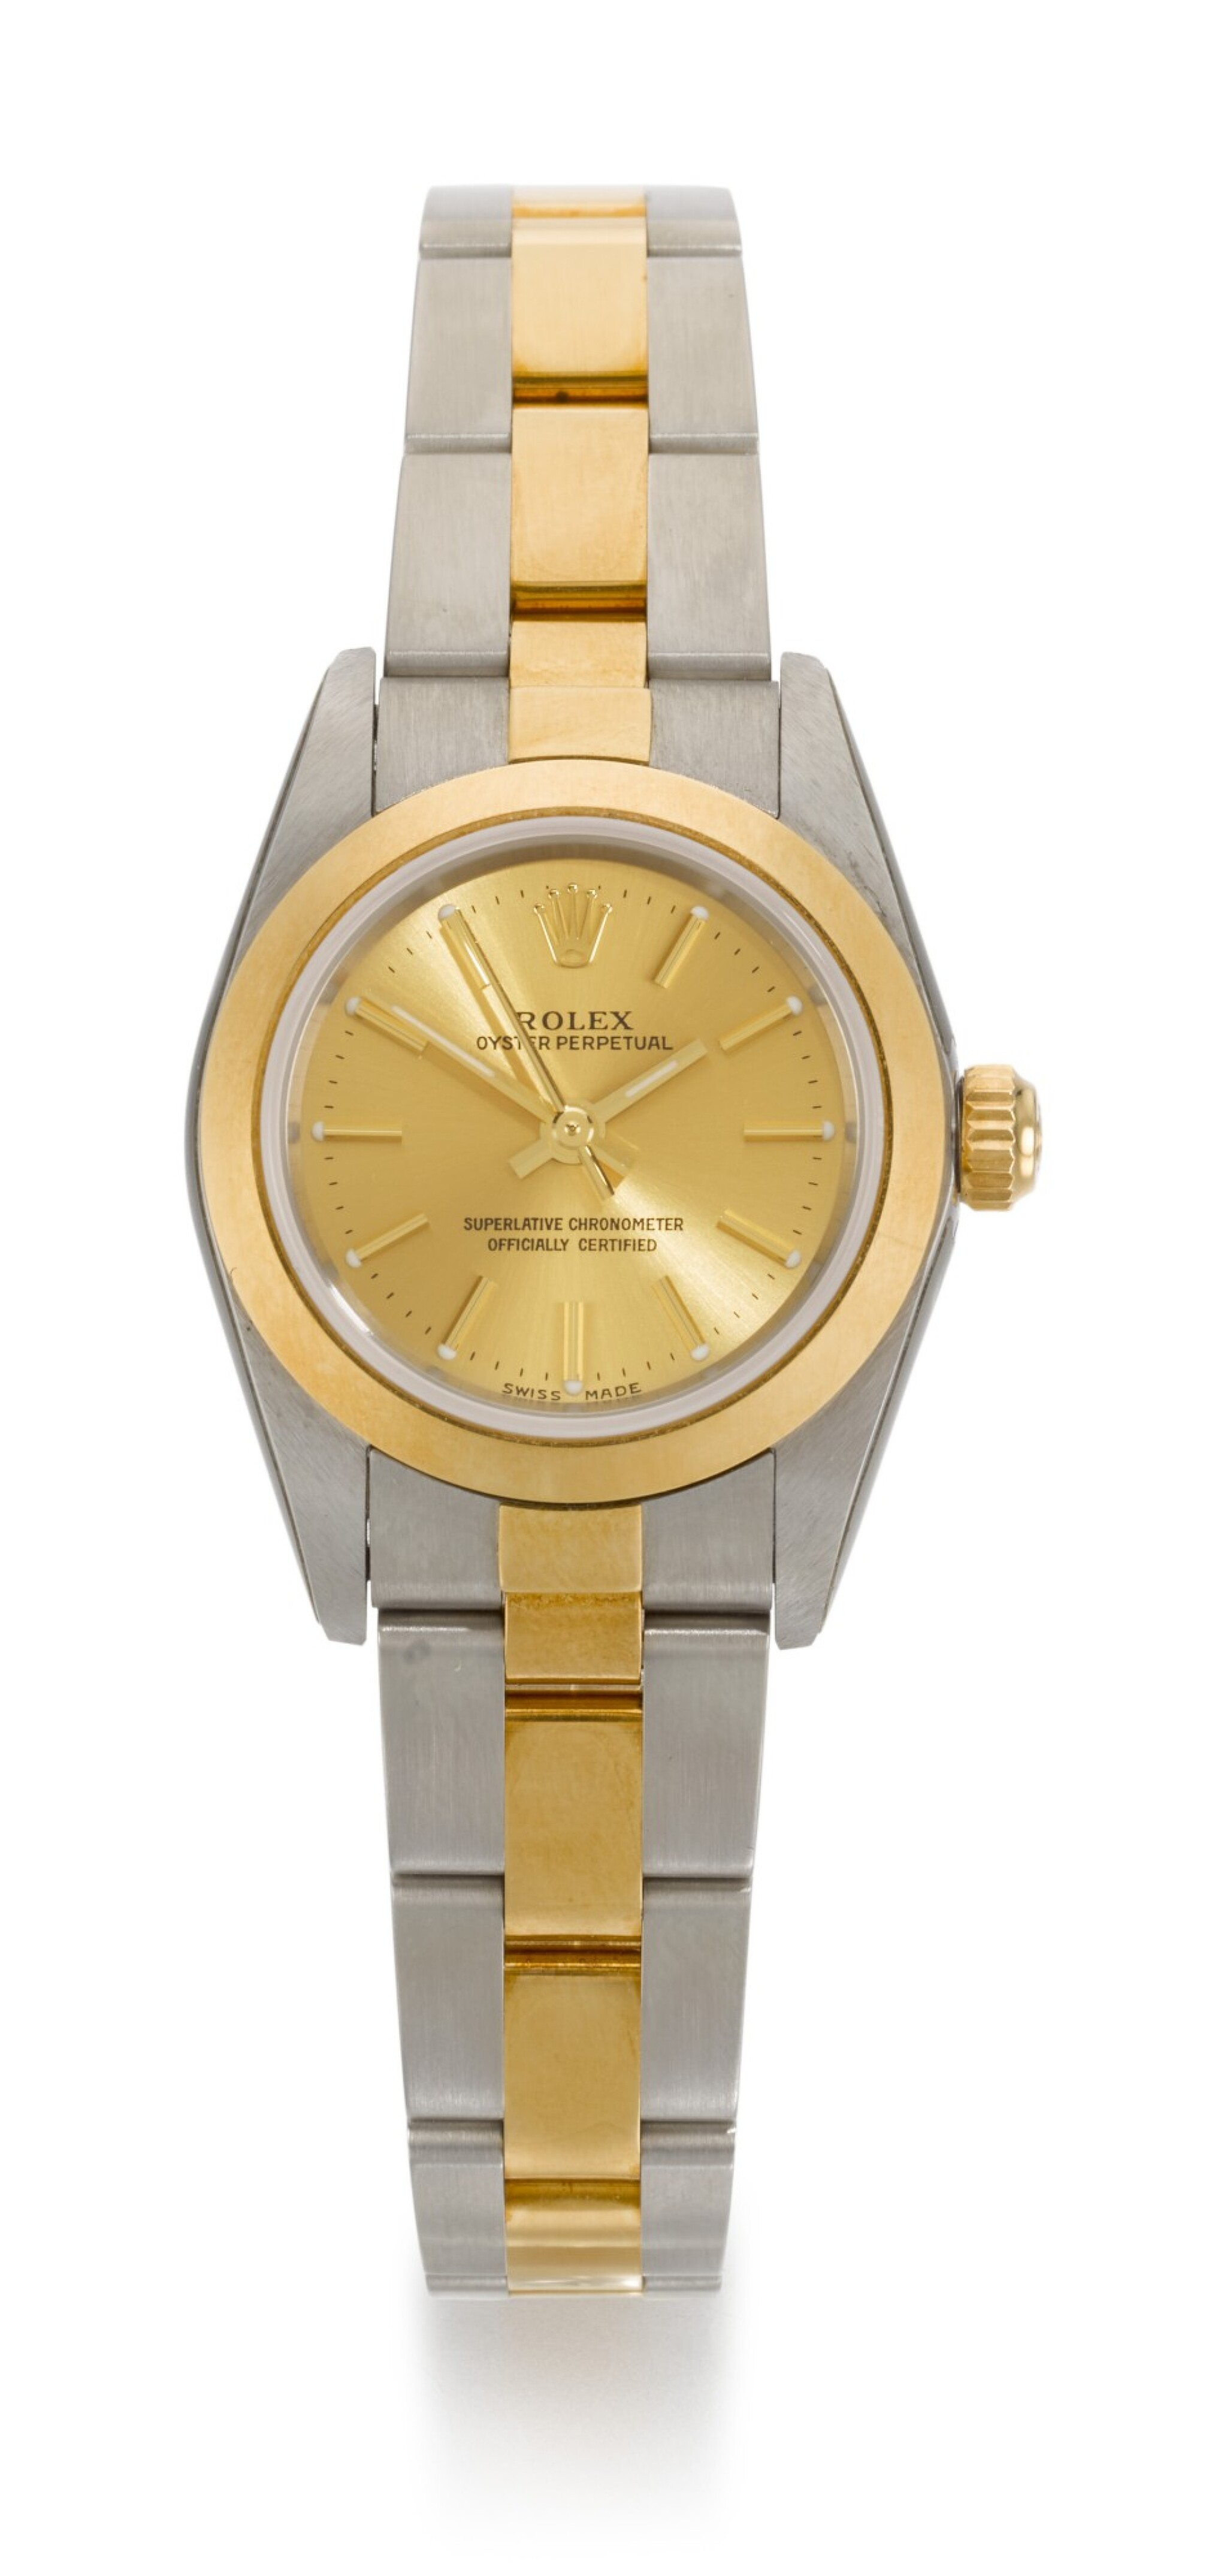 ROLEX | OYSTER PERPETUAL, REFERENCE 76183, STAINLESS STEEL AND YELLOW GOLD WRISTWATCH WITH BRACELET, CIRCA 2002